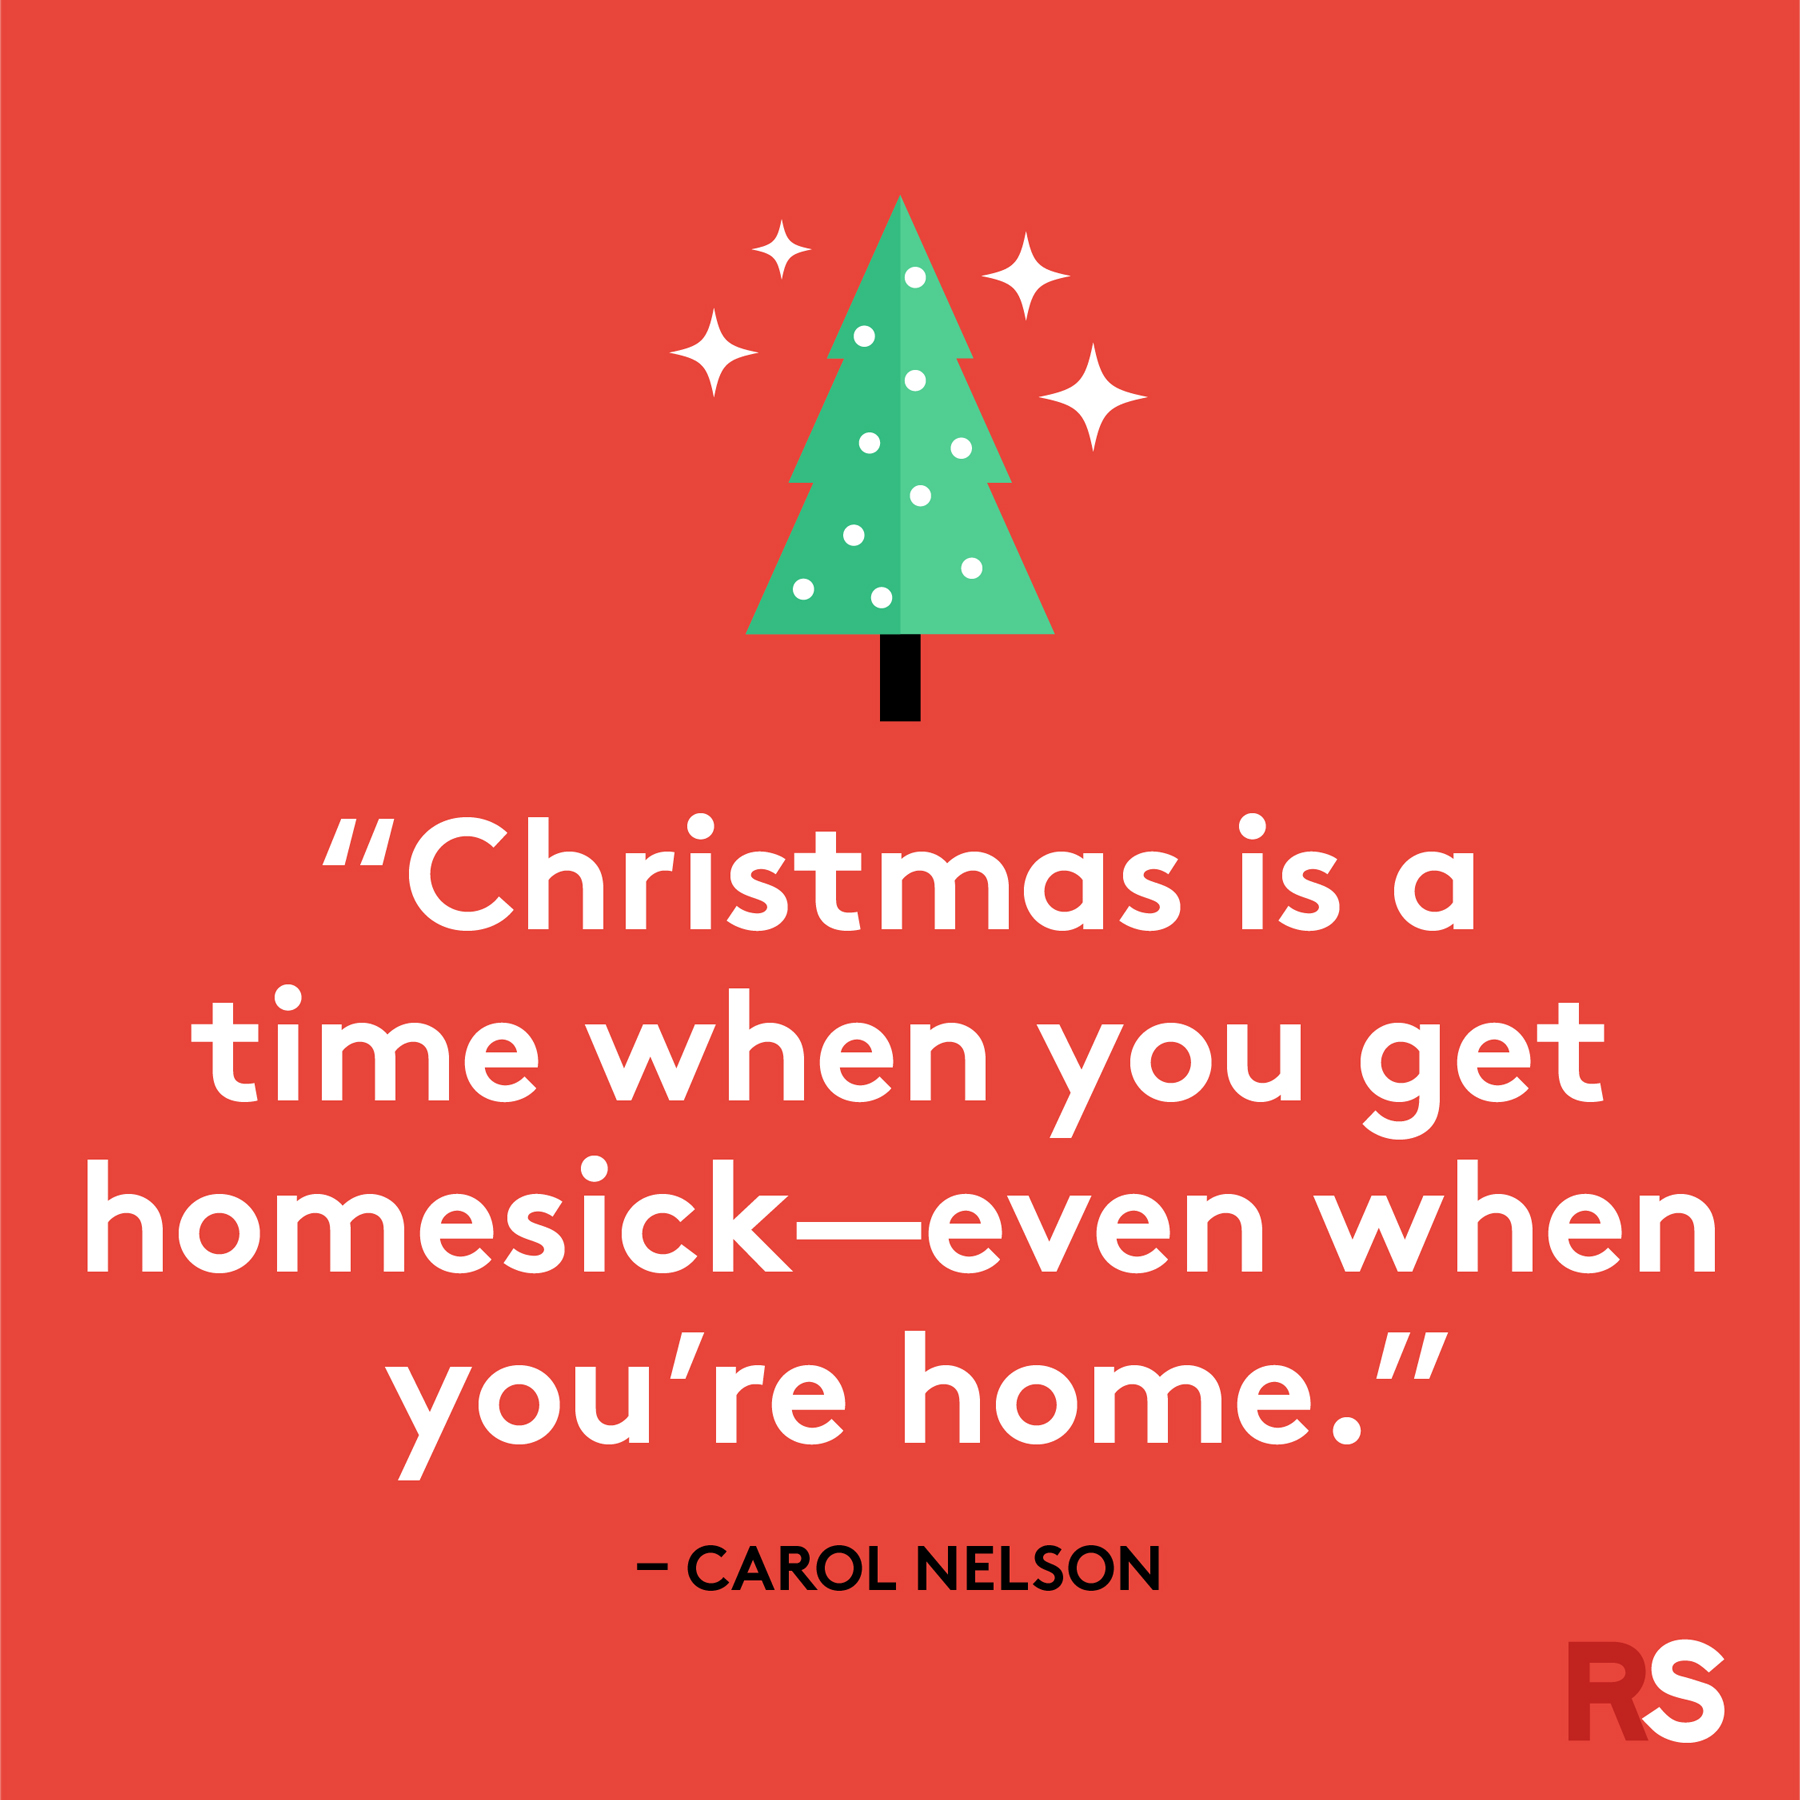 Best Christmas quotes - Carol Nelson